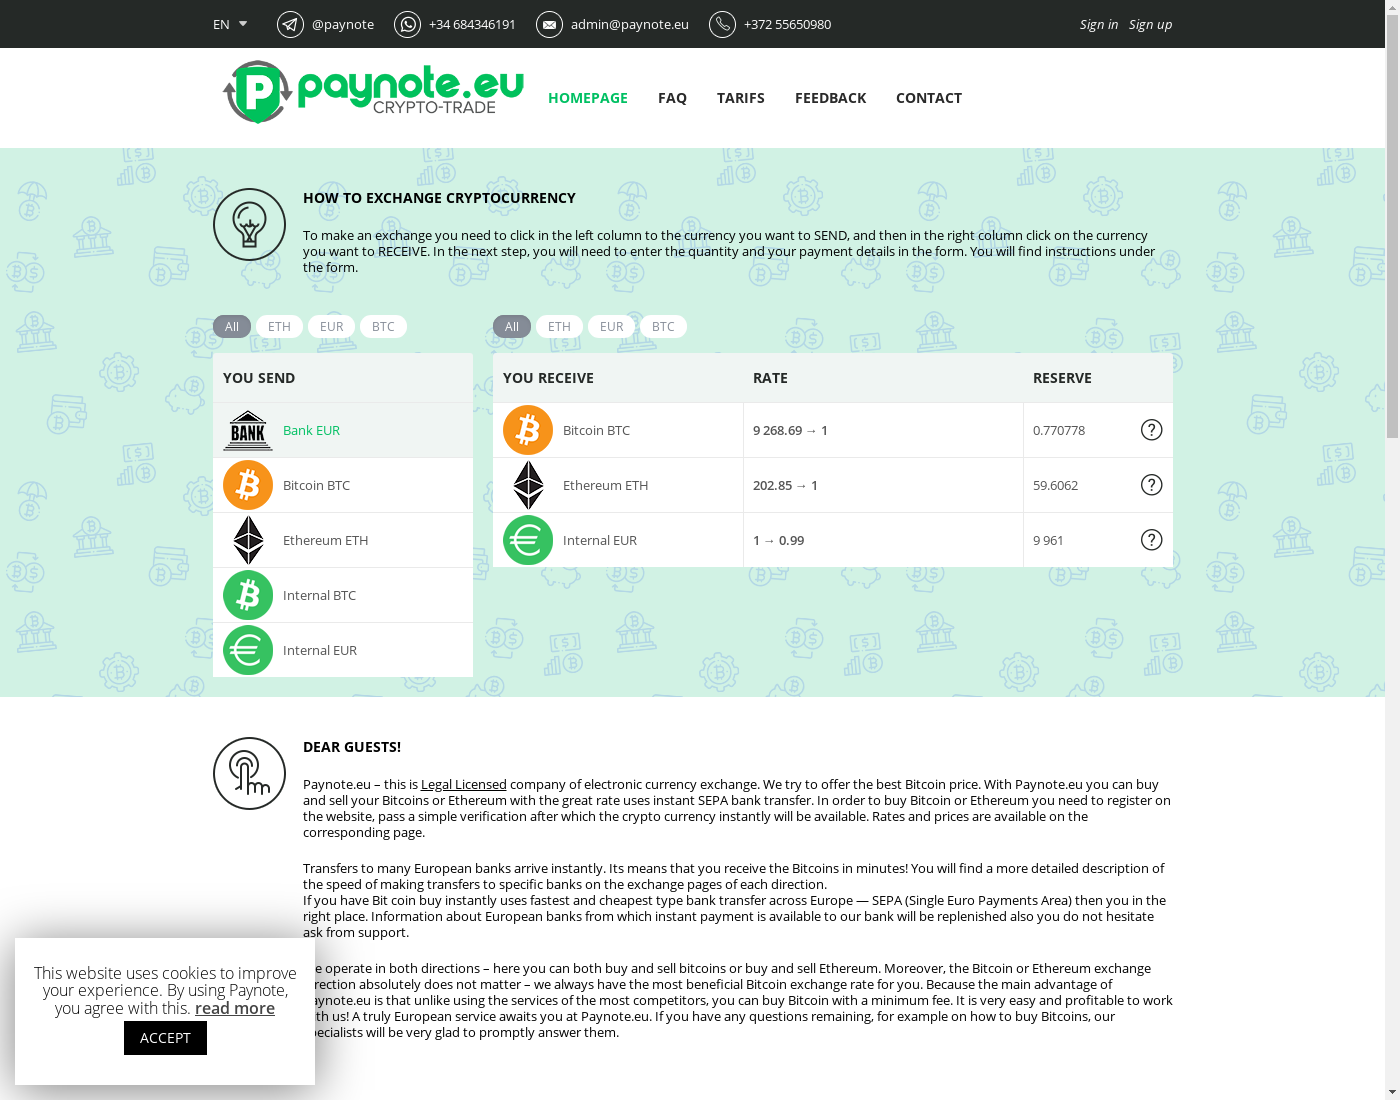 Paynote user interface: the home page in English